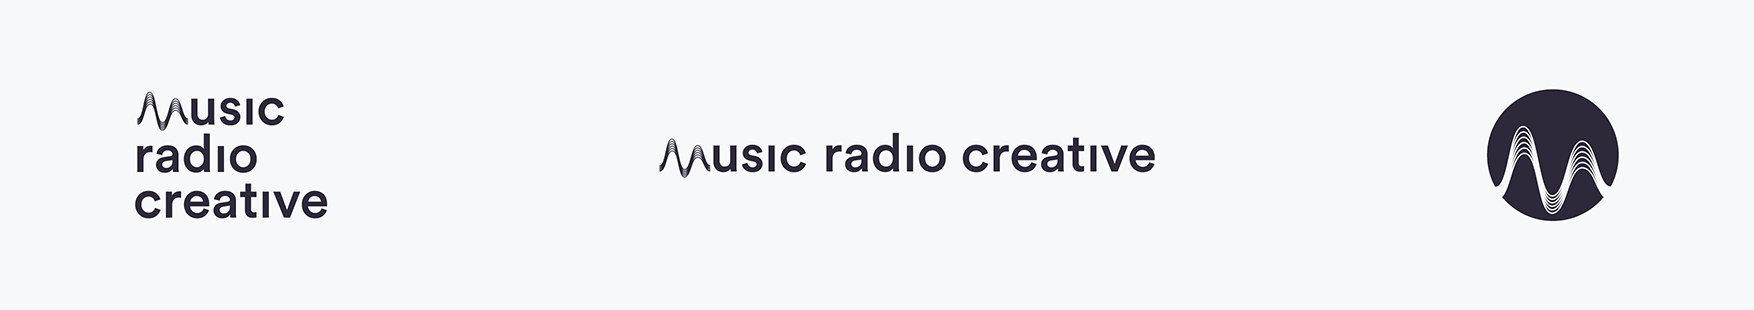 music-radio-creative-brand-06.png